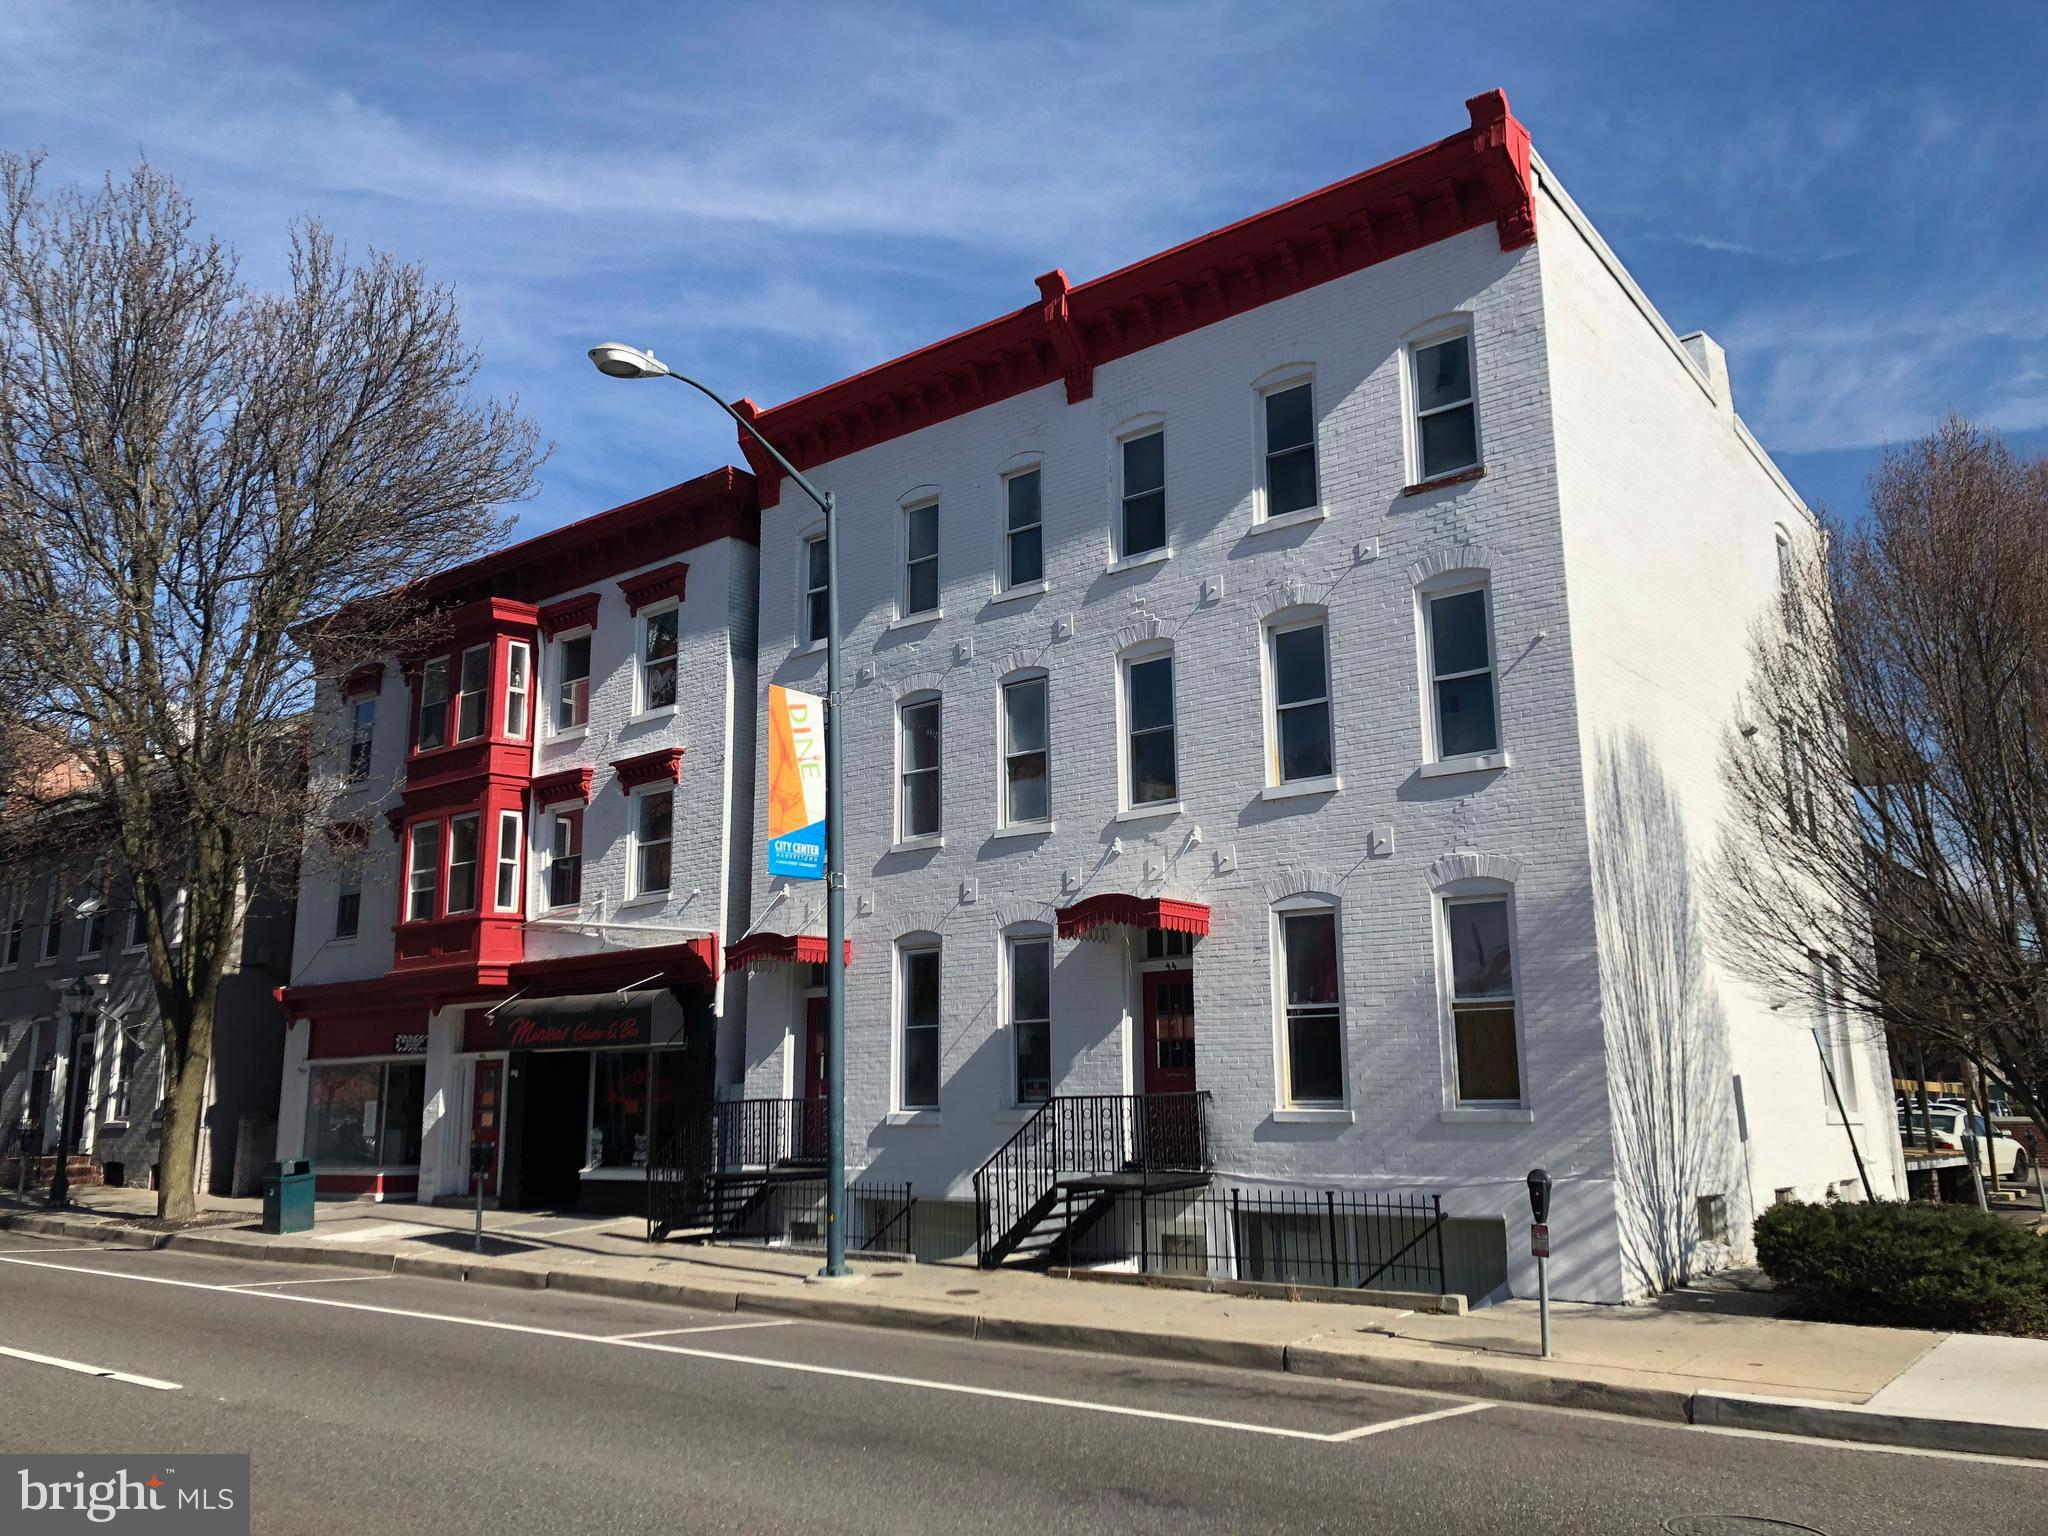 VALUE -ADD OPPORTUNITY to acquire a downtown Mixed Use 16 Unit garden-style multifamily building, comprised by 14 residential and 2 commercial units, fully separated electric by baseboard heating. two separated deeds,  2 separate buildings